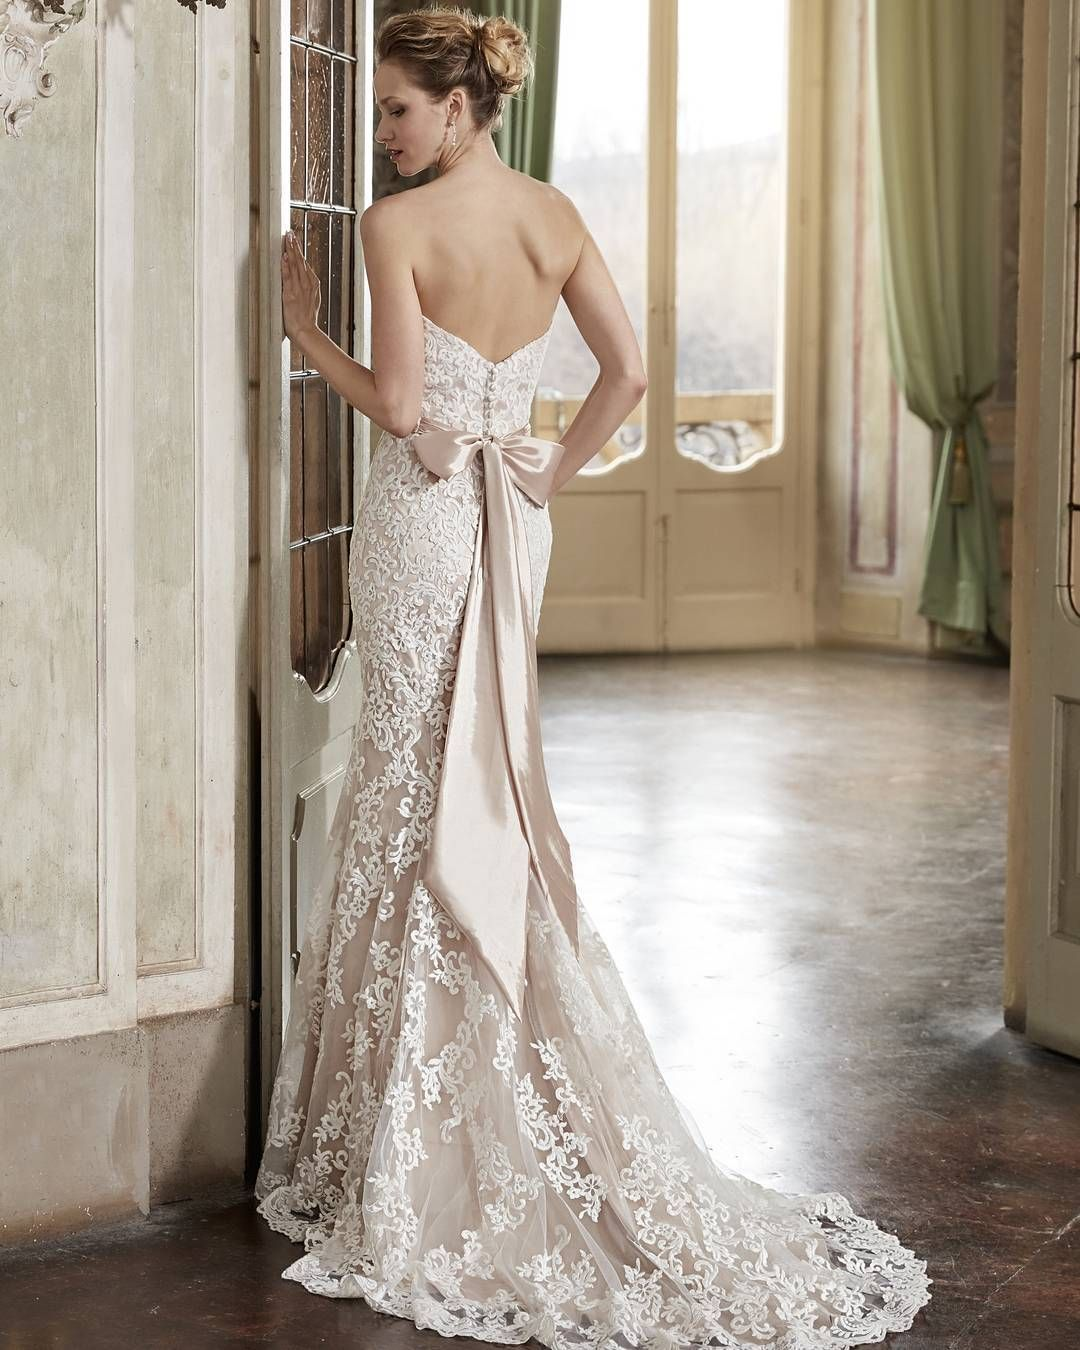 Wedding dress for your body  Just a touch of satin can add that elegant finish youure looking for